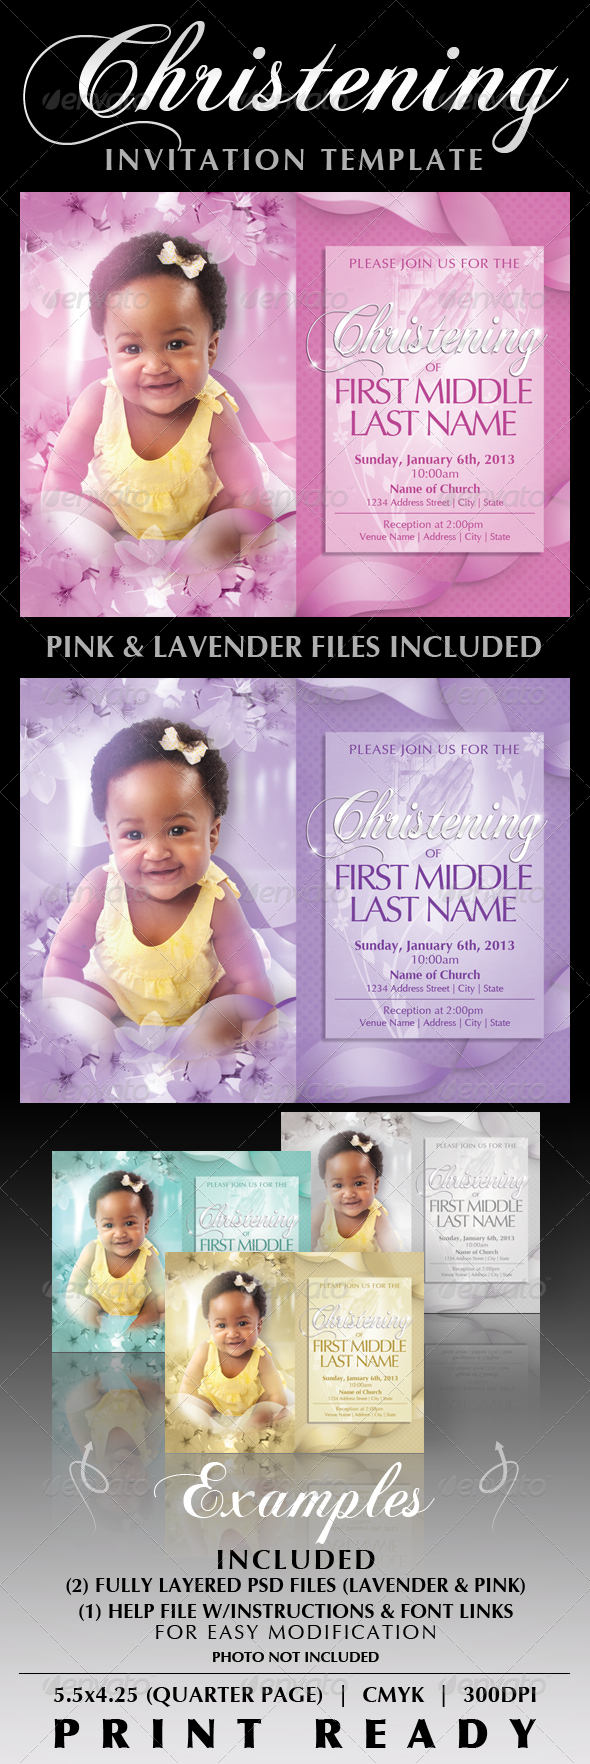 Baby christening invitation templates by creativb graphicriver baby christening invitation templates invitations cards invites stopboris Images